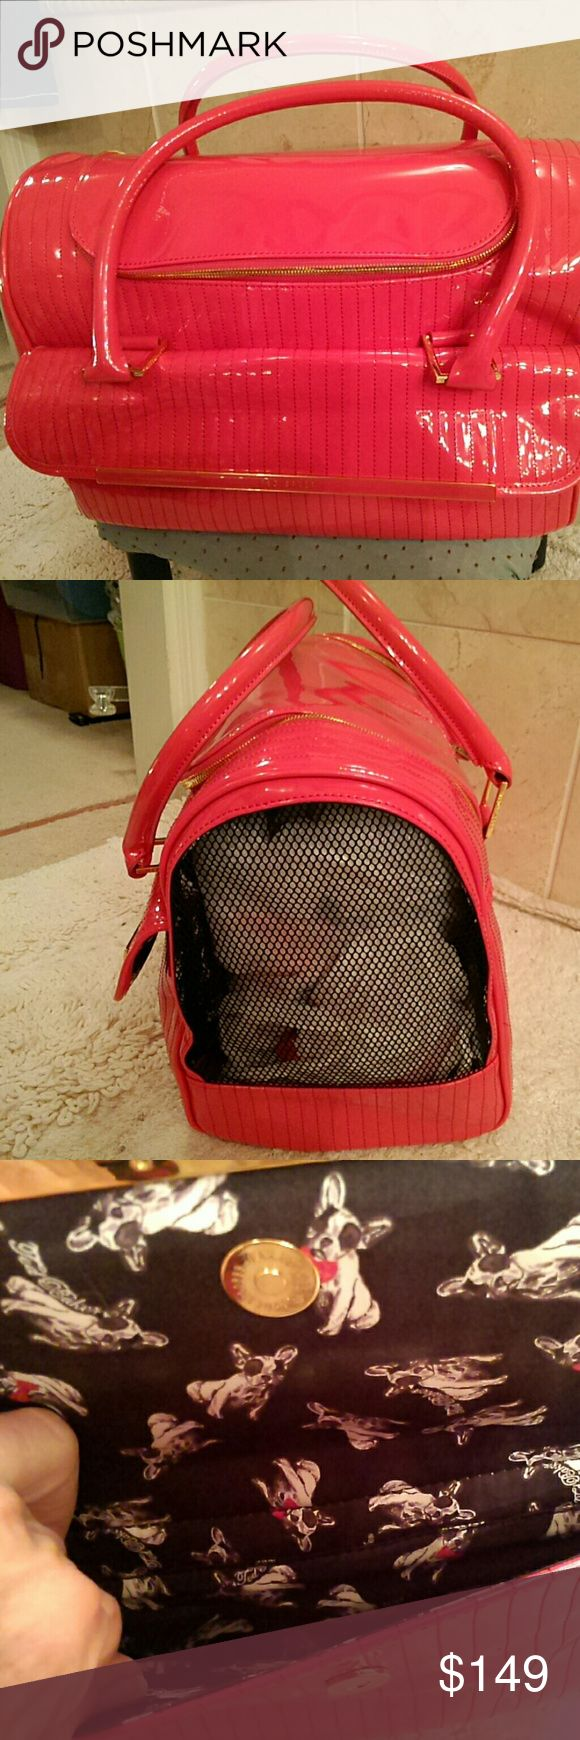 Selling this Sale**Hot pink Ted Baker pet carrier in my Poshmark closet! My username is: sanness. #shopmycloset #poshmark #fashion #shopping #style #forsale #Ted Baker #Handbags